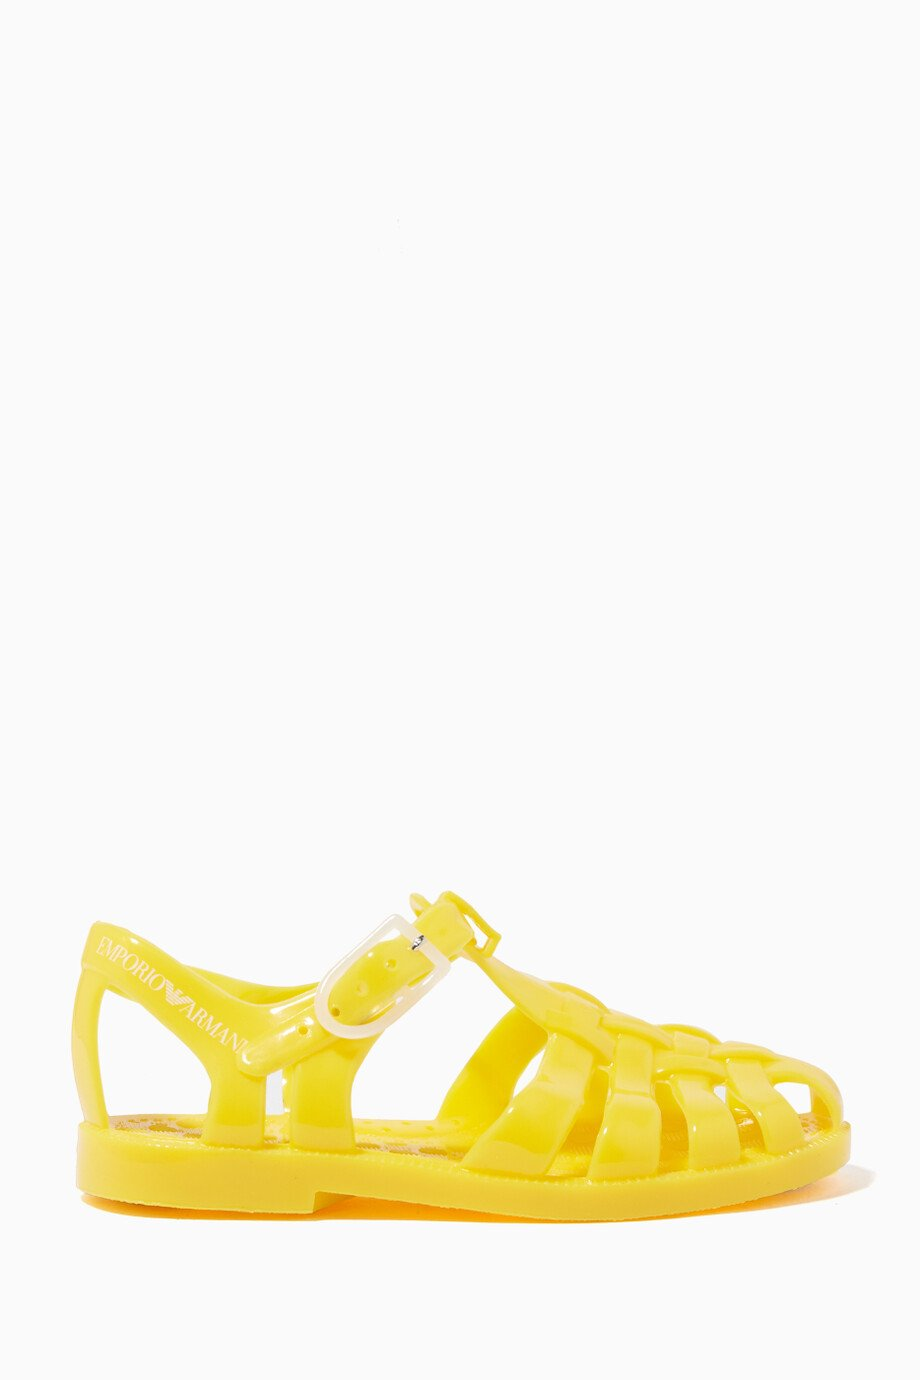 7de4f0b78ce Shop Emporio Armani Yellow Yellow Jelly Sandals for Kids